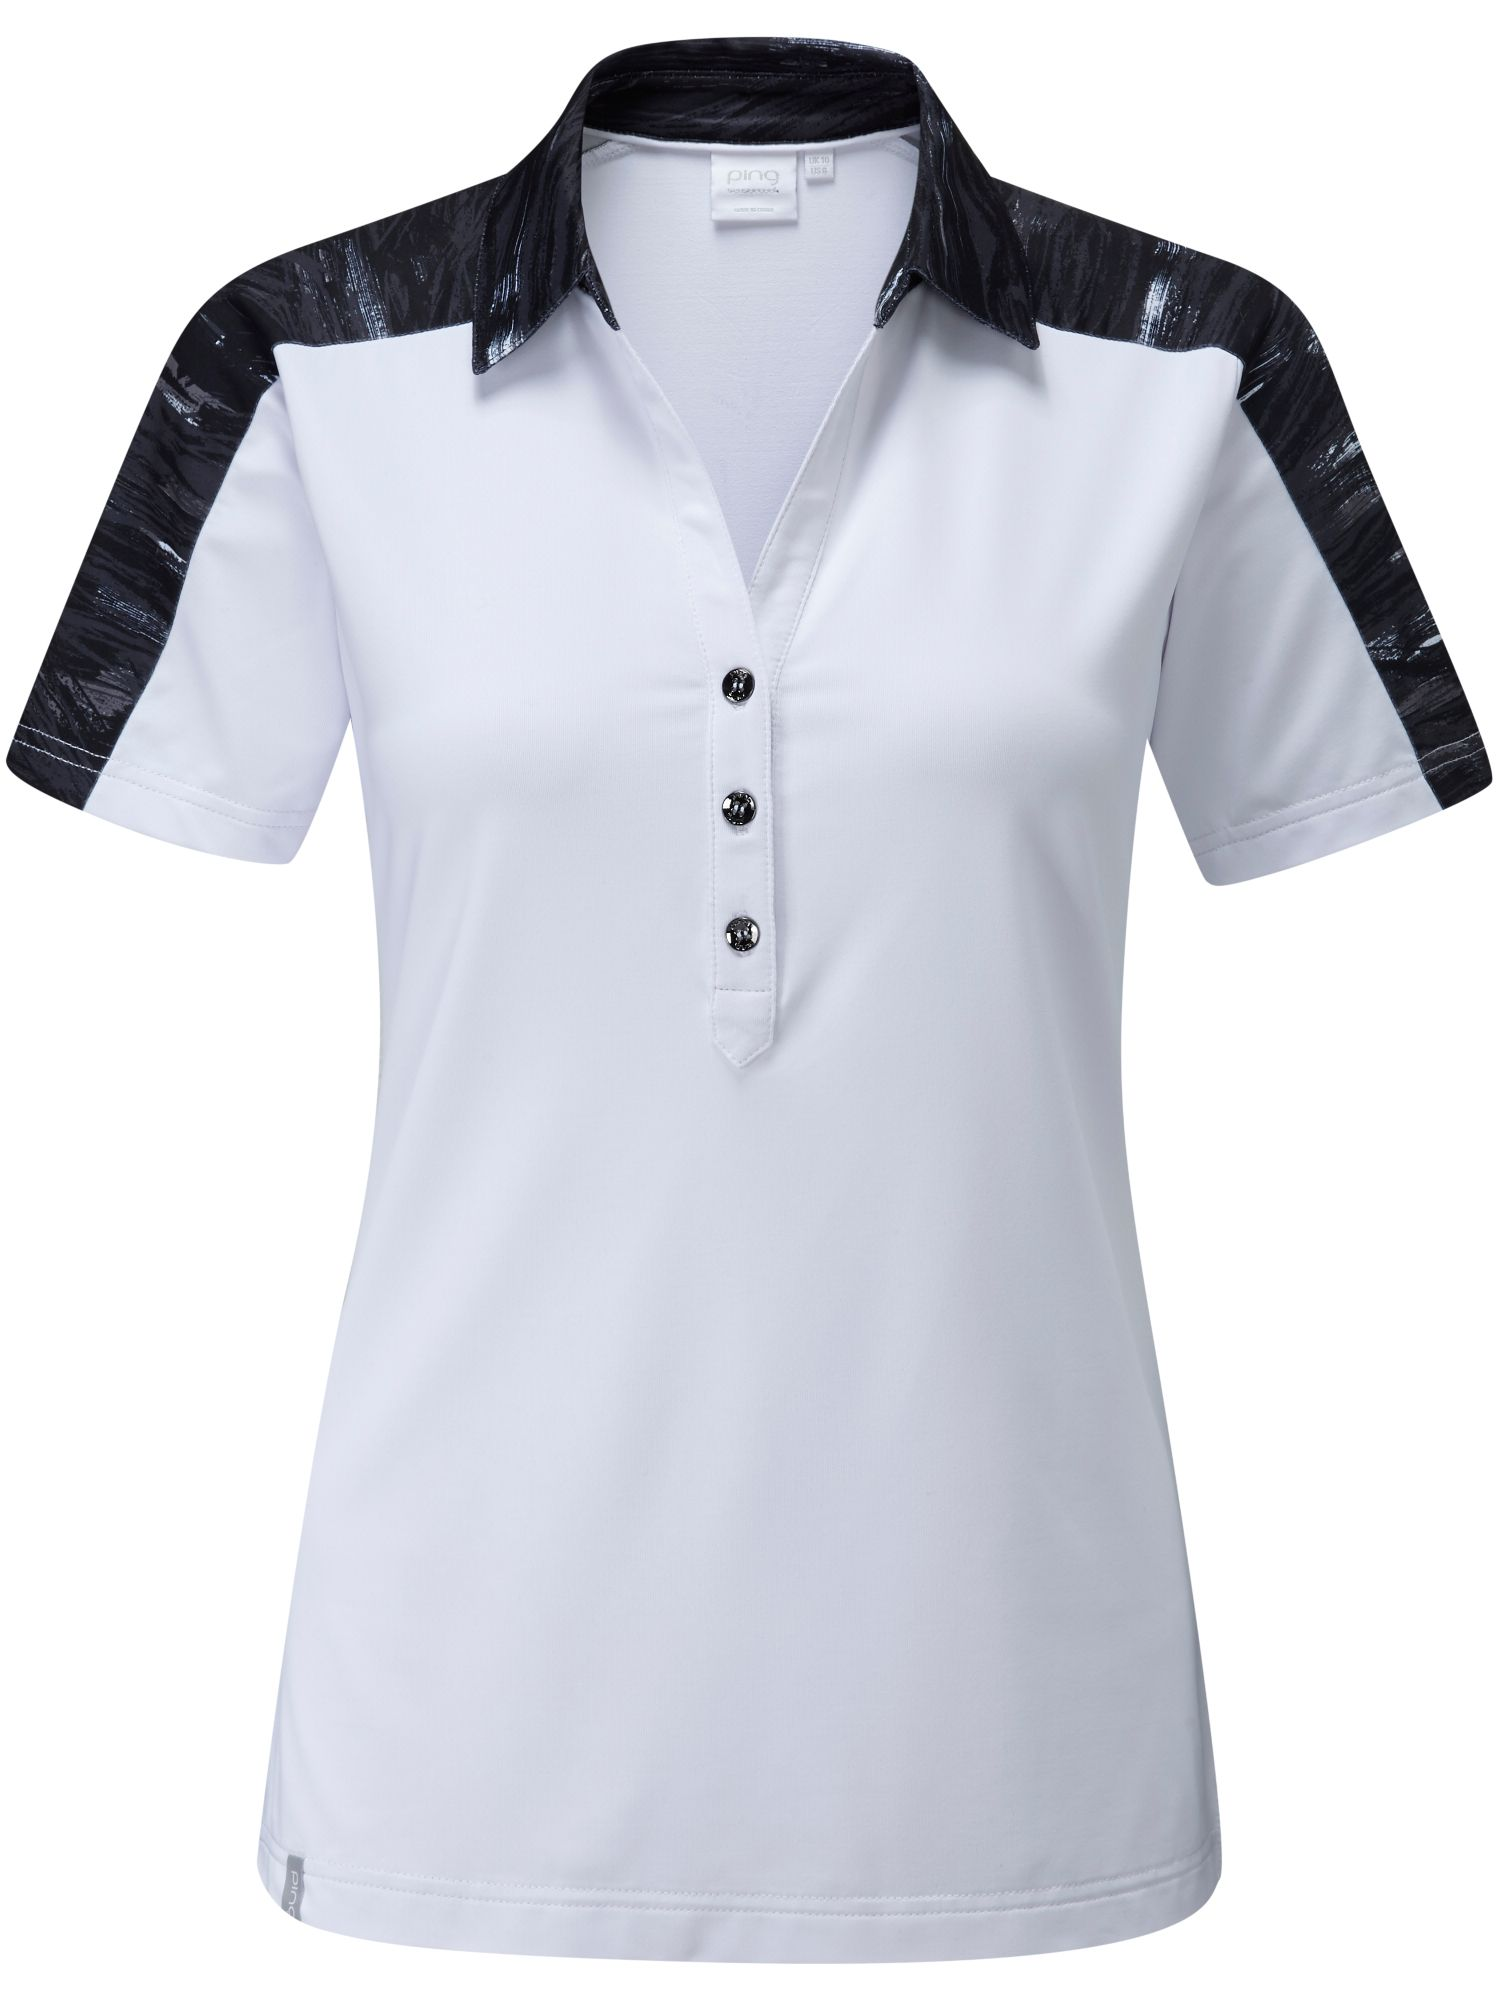 Ping Willow Polo, White